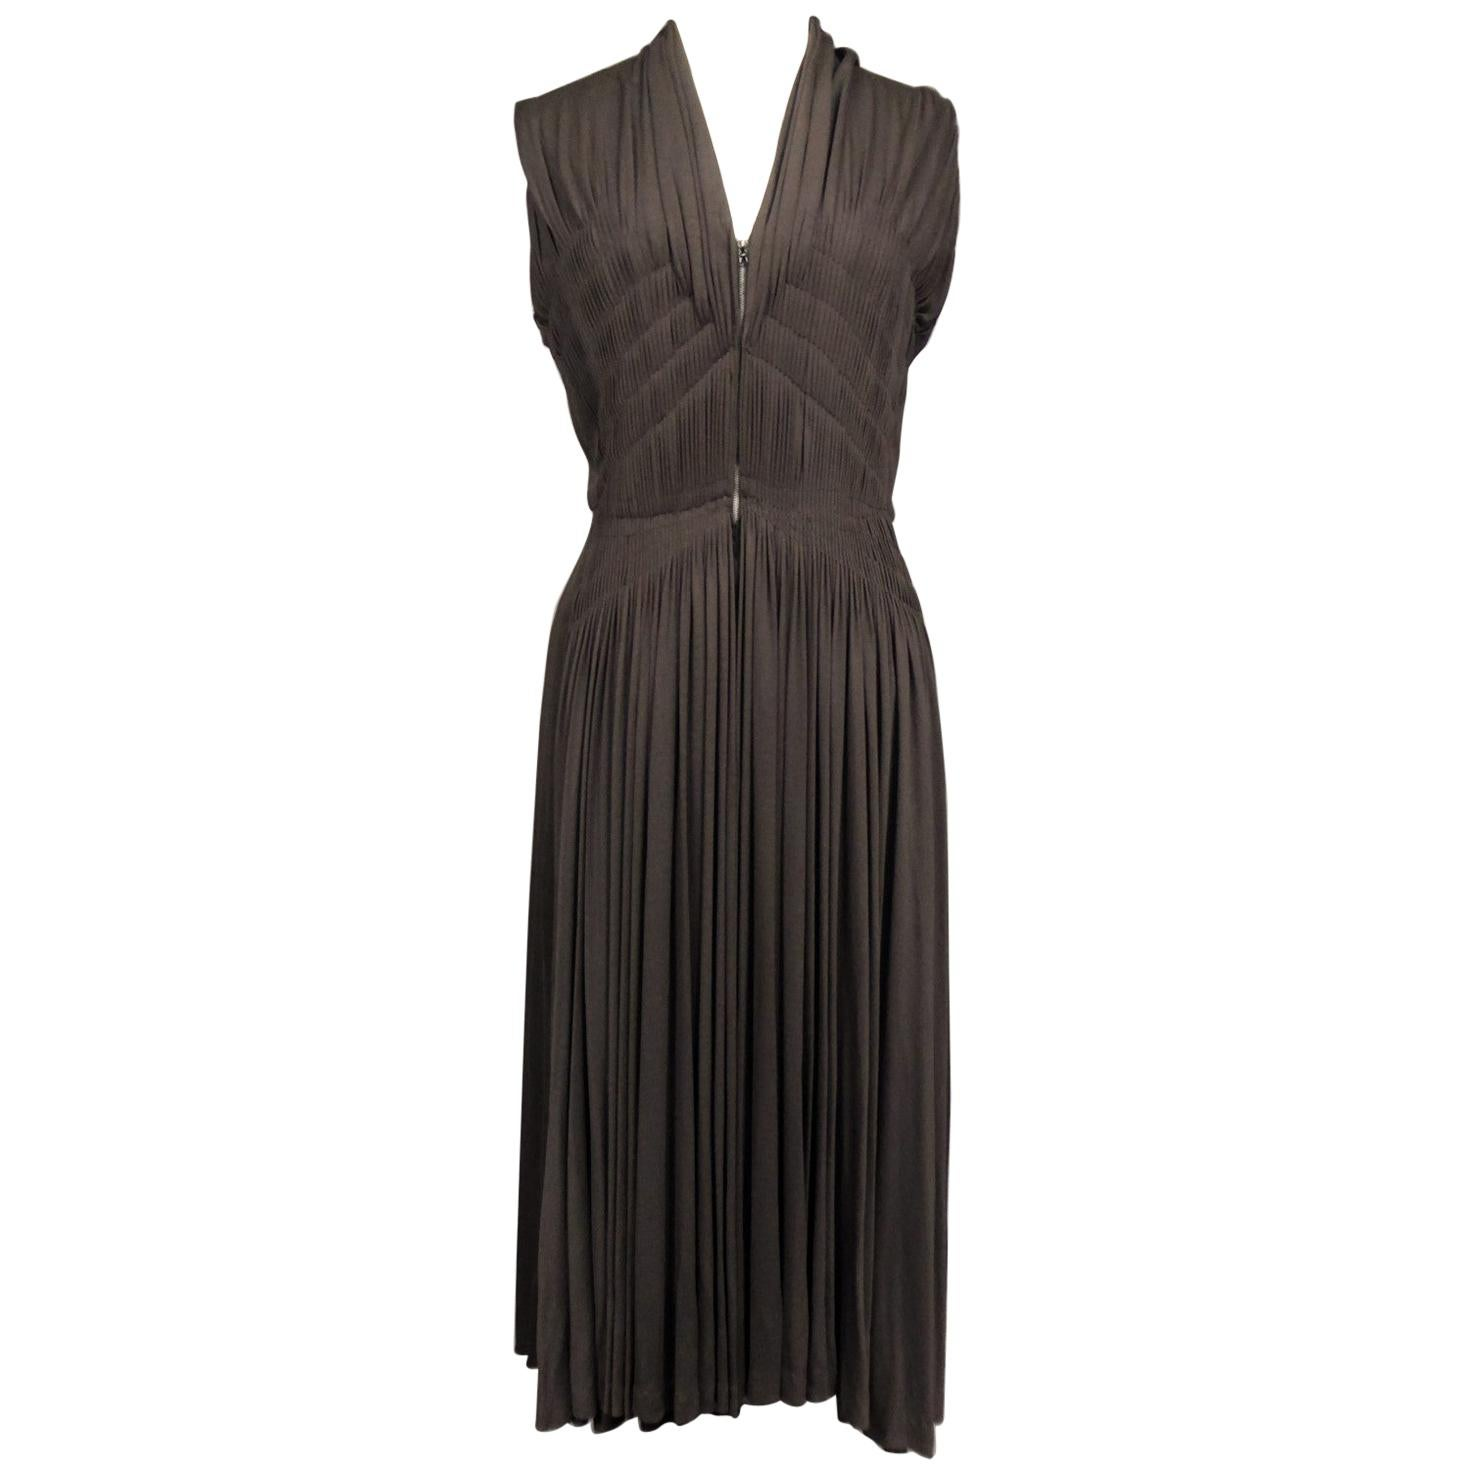 A Madame Grès Cocktail Dress In Pleated Silk Jersey Numbered 63926 Circa 1950